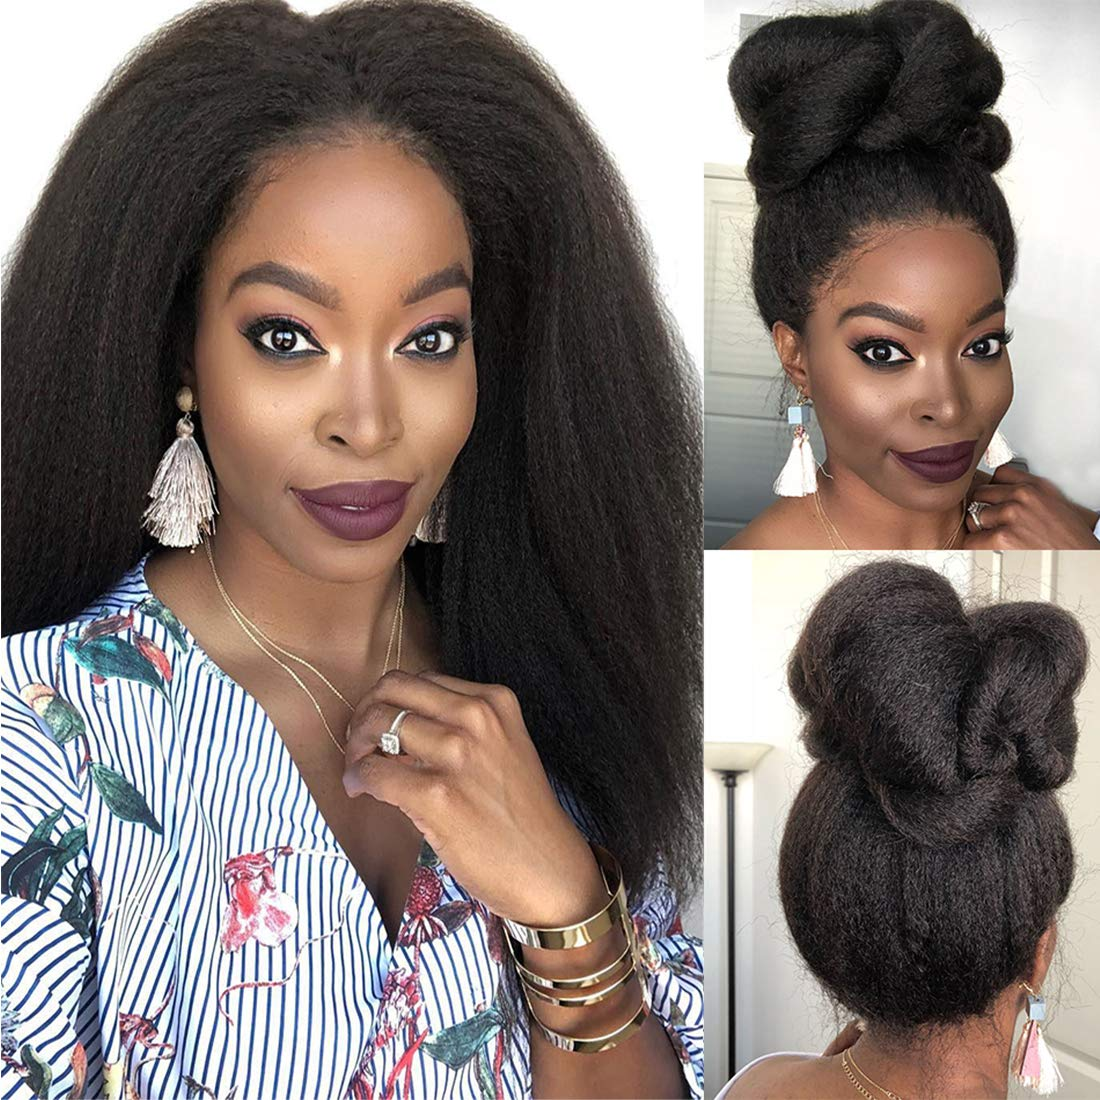 Yaki Straight 13x4 Lace Front Human Hair Wigs Peruvian Transparent Remy Lace Frontal Human Hair Wigs For Black Women Pre Plucked